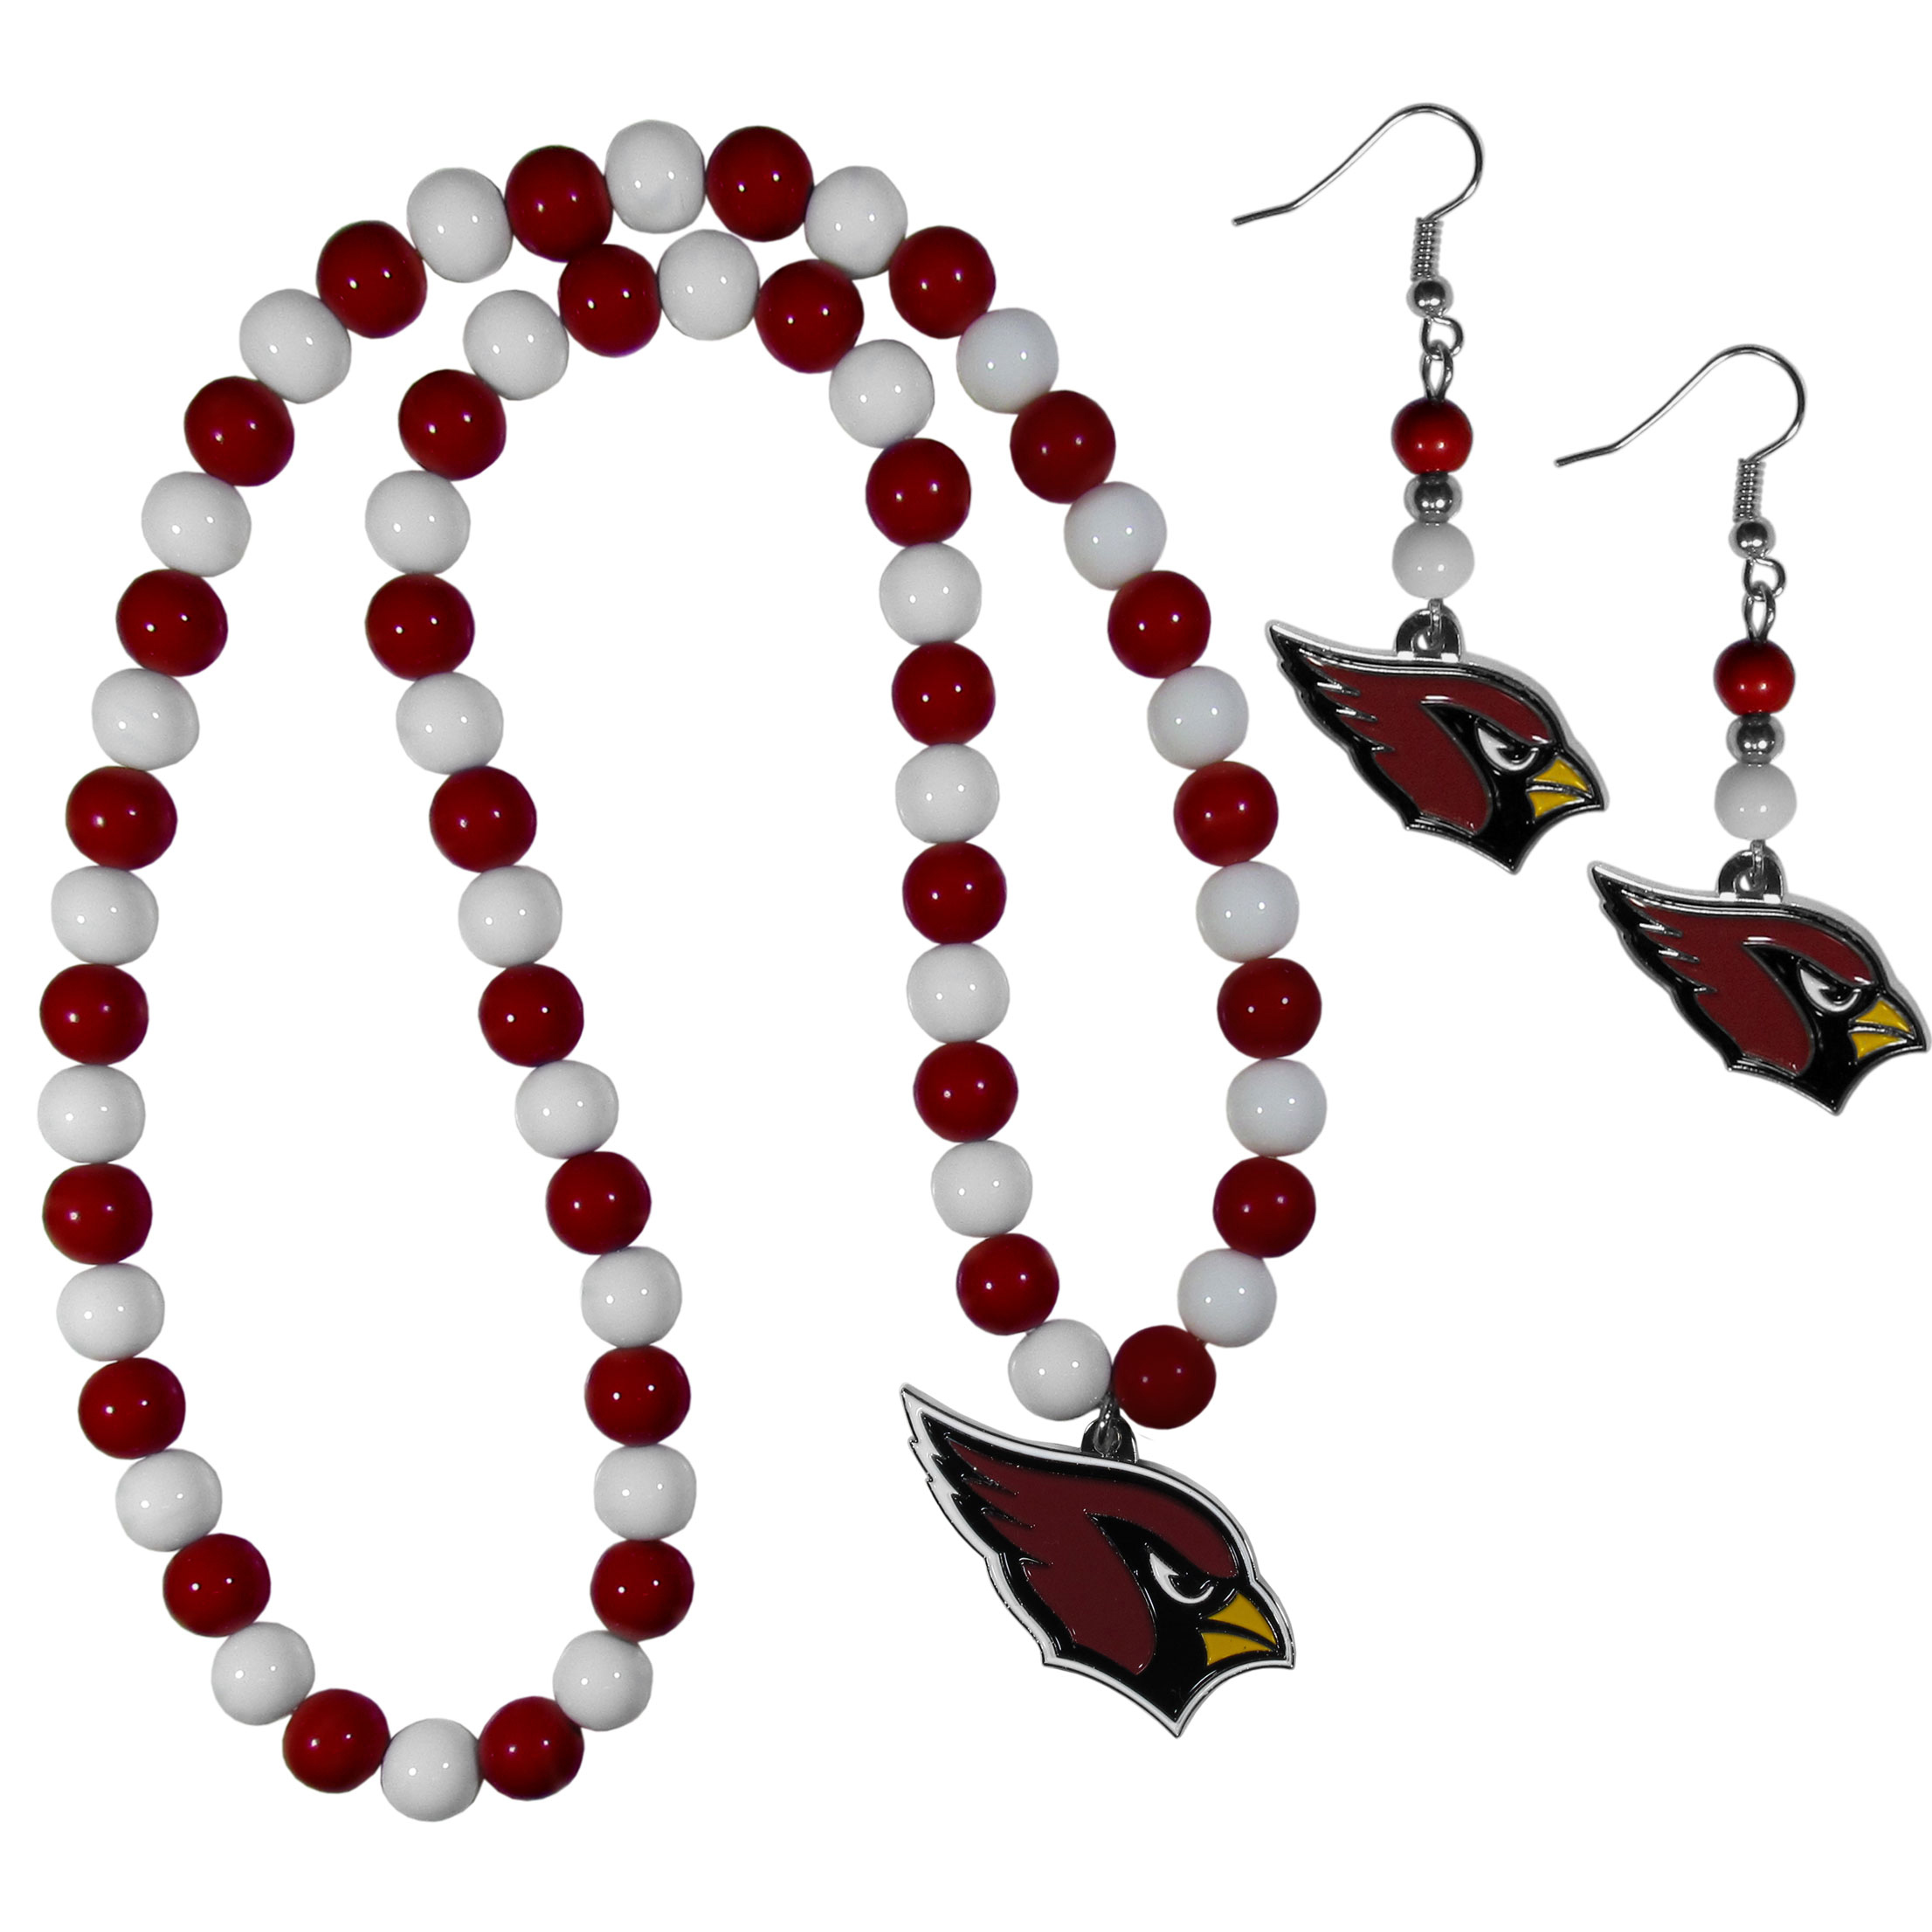 Arizona Cardinals Fan Bead Earrings and Necklace Set - These fun and colorful Arizona Cardinals fan bead jewelry pieces are an eyecatching way to show off your team spirit. The earrings feature hypoallergenic, nickel free fishhook post and 2 team colored beads with a beautifully carved team charm to finish this attractive dangle look. The mathcing bracelet has alternating team colored beads on a stretch cord and features a matching team charm.